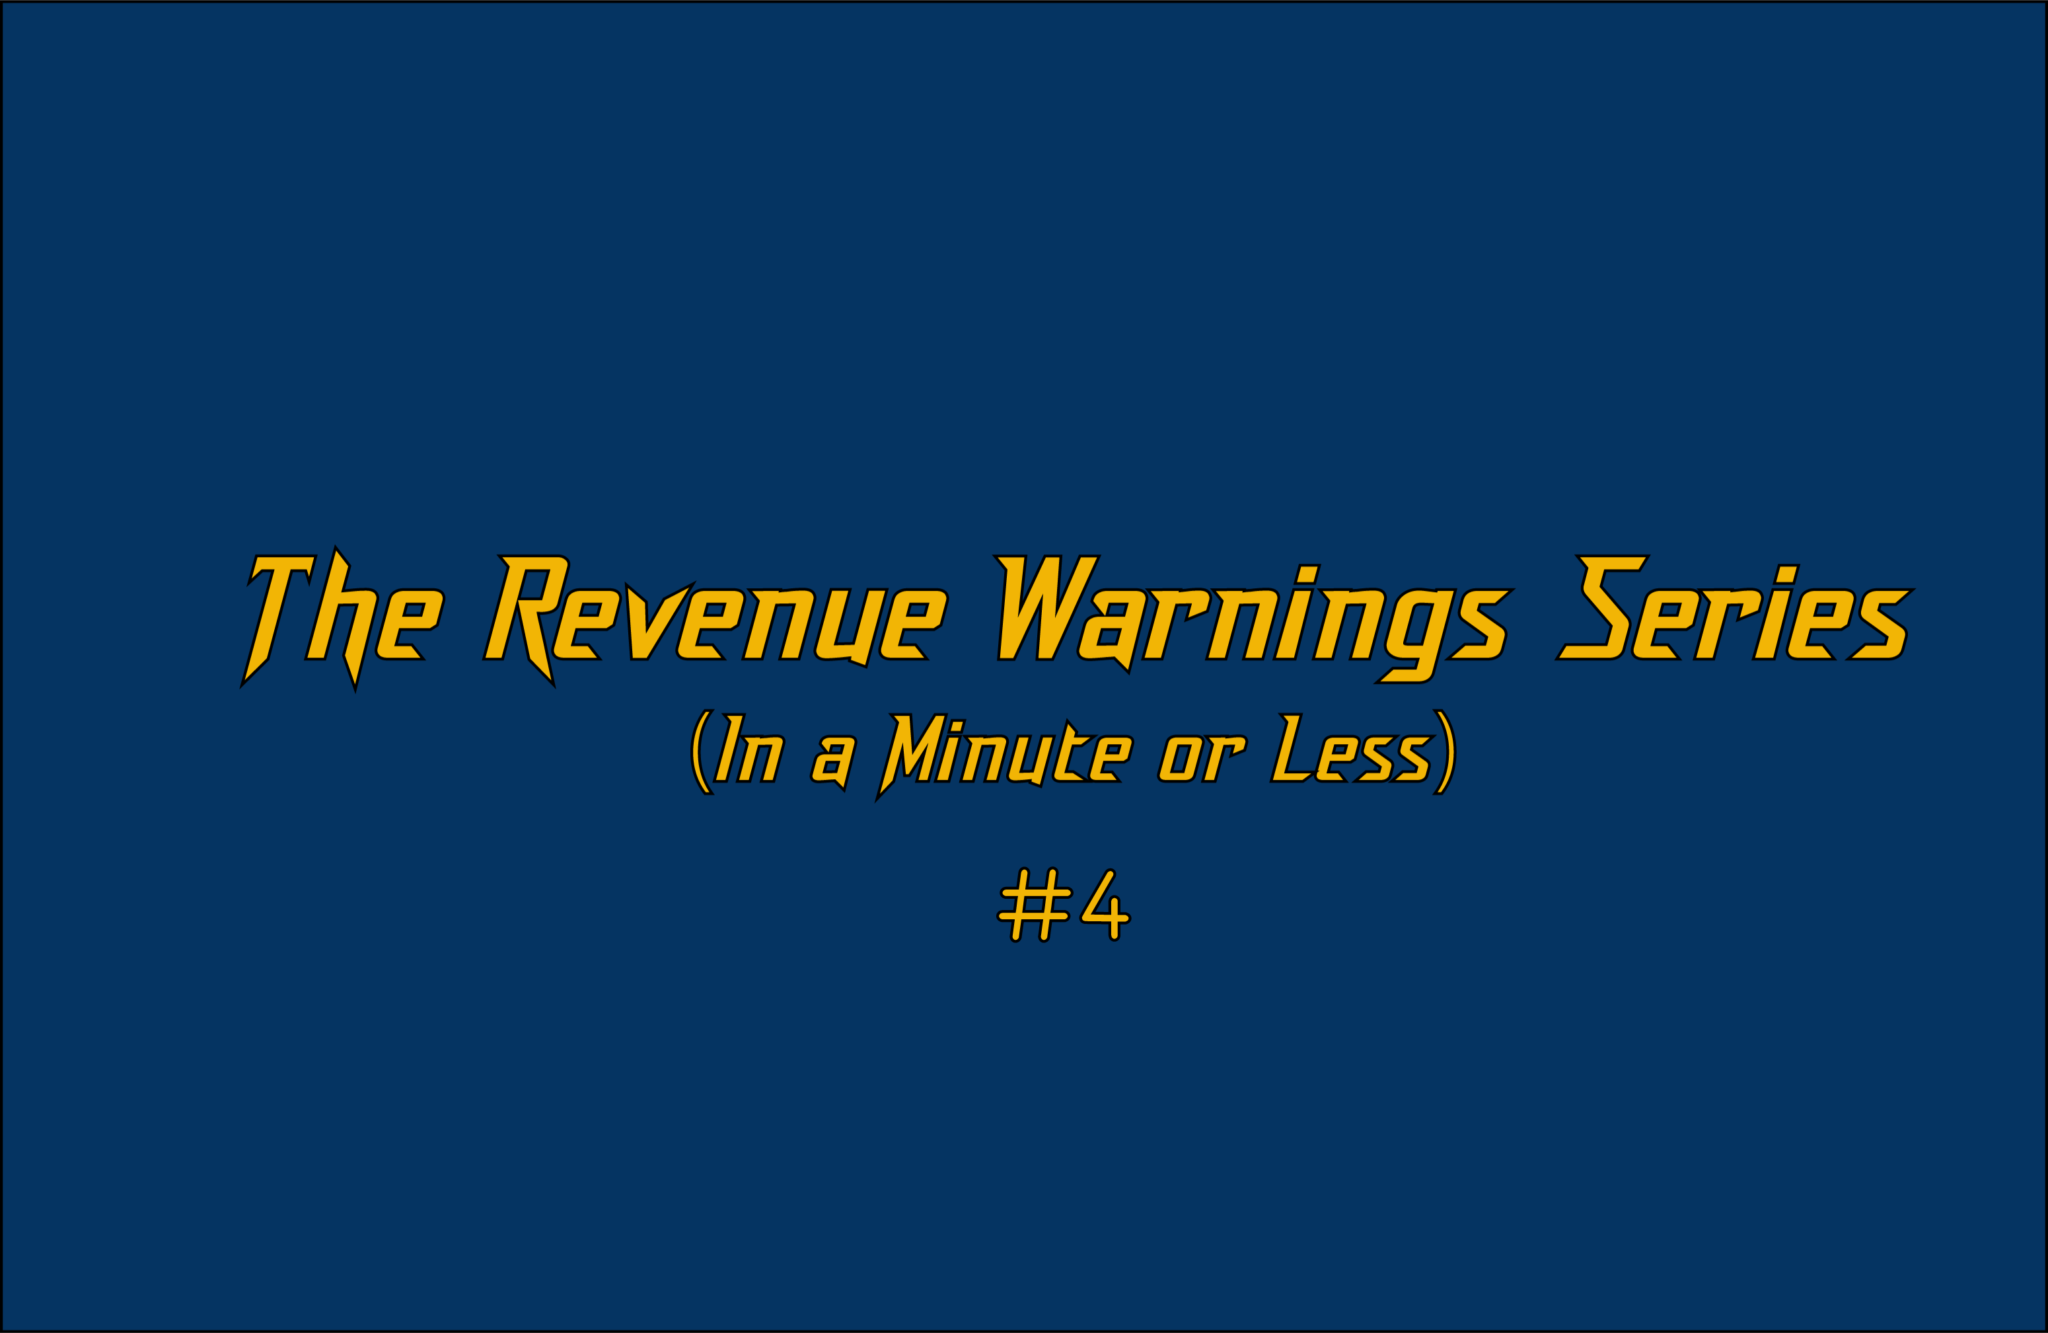 Revenue Warning #4: Don't Manage Transparency